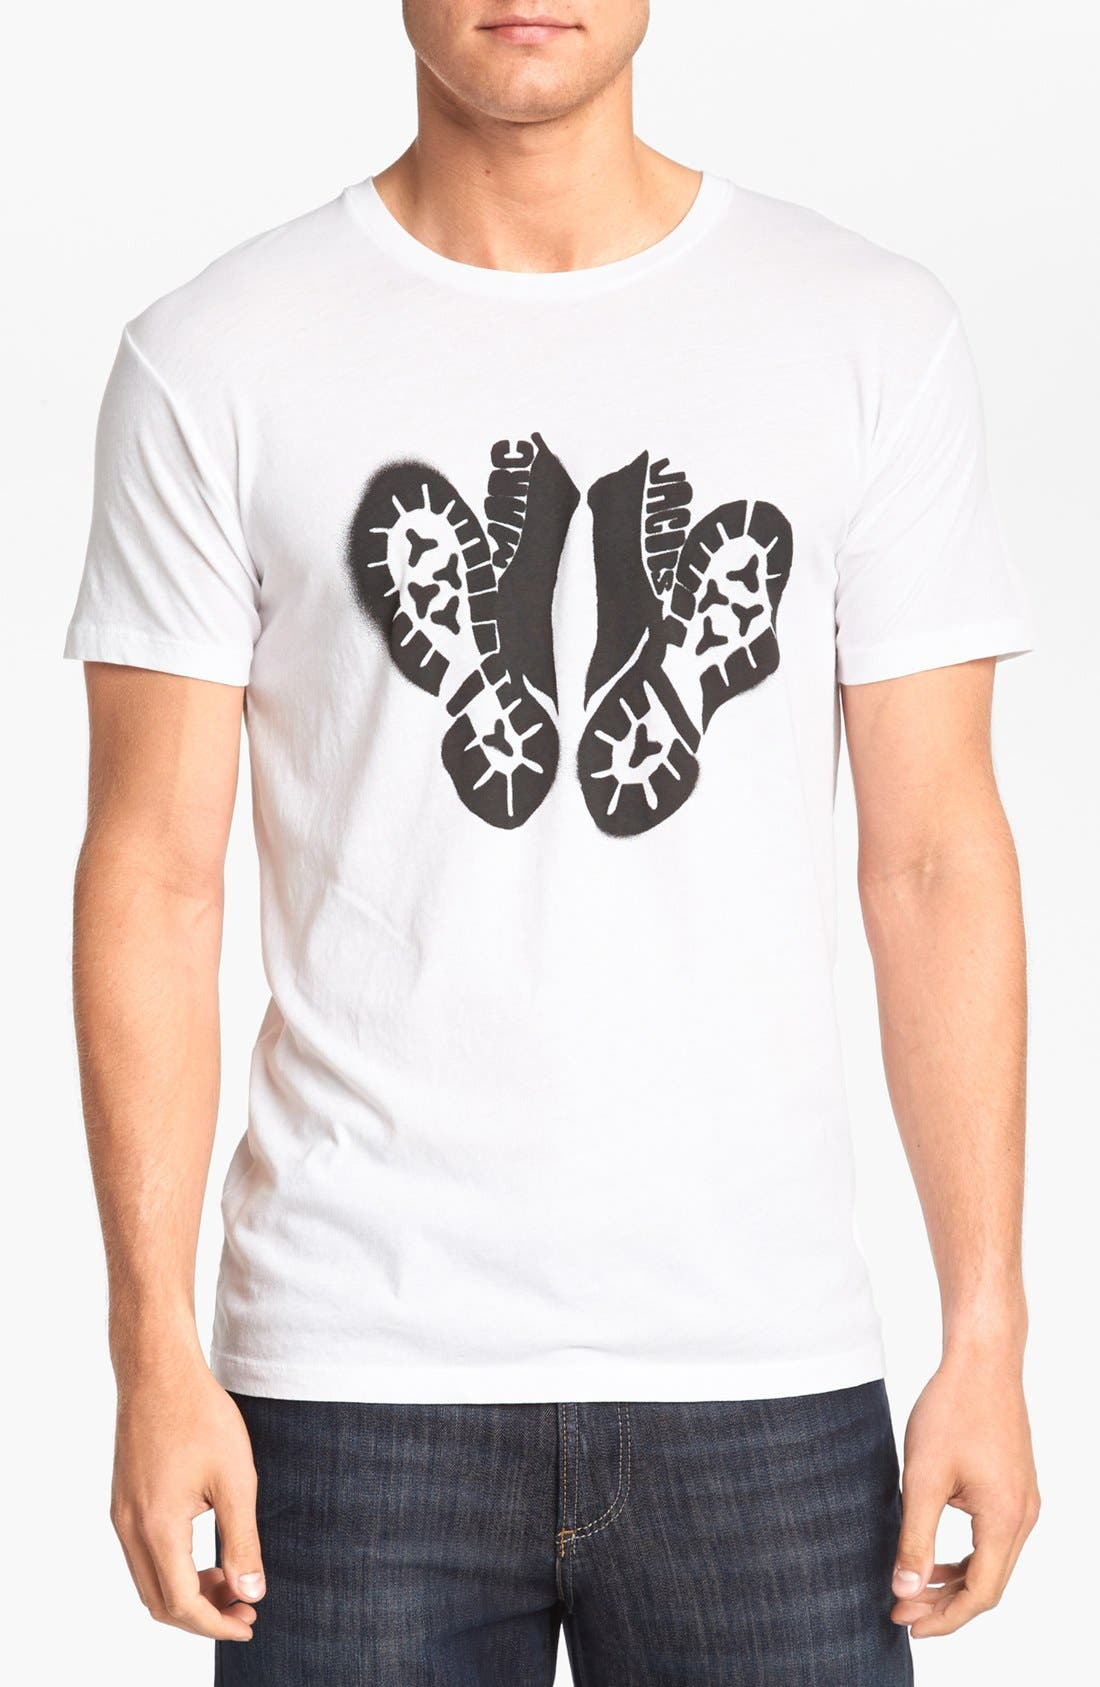 Alternate Image 1 Selected - MARC BY MARC JACOBS Stencil Boots Cotton T-Shirt